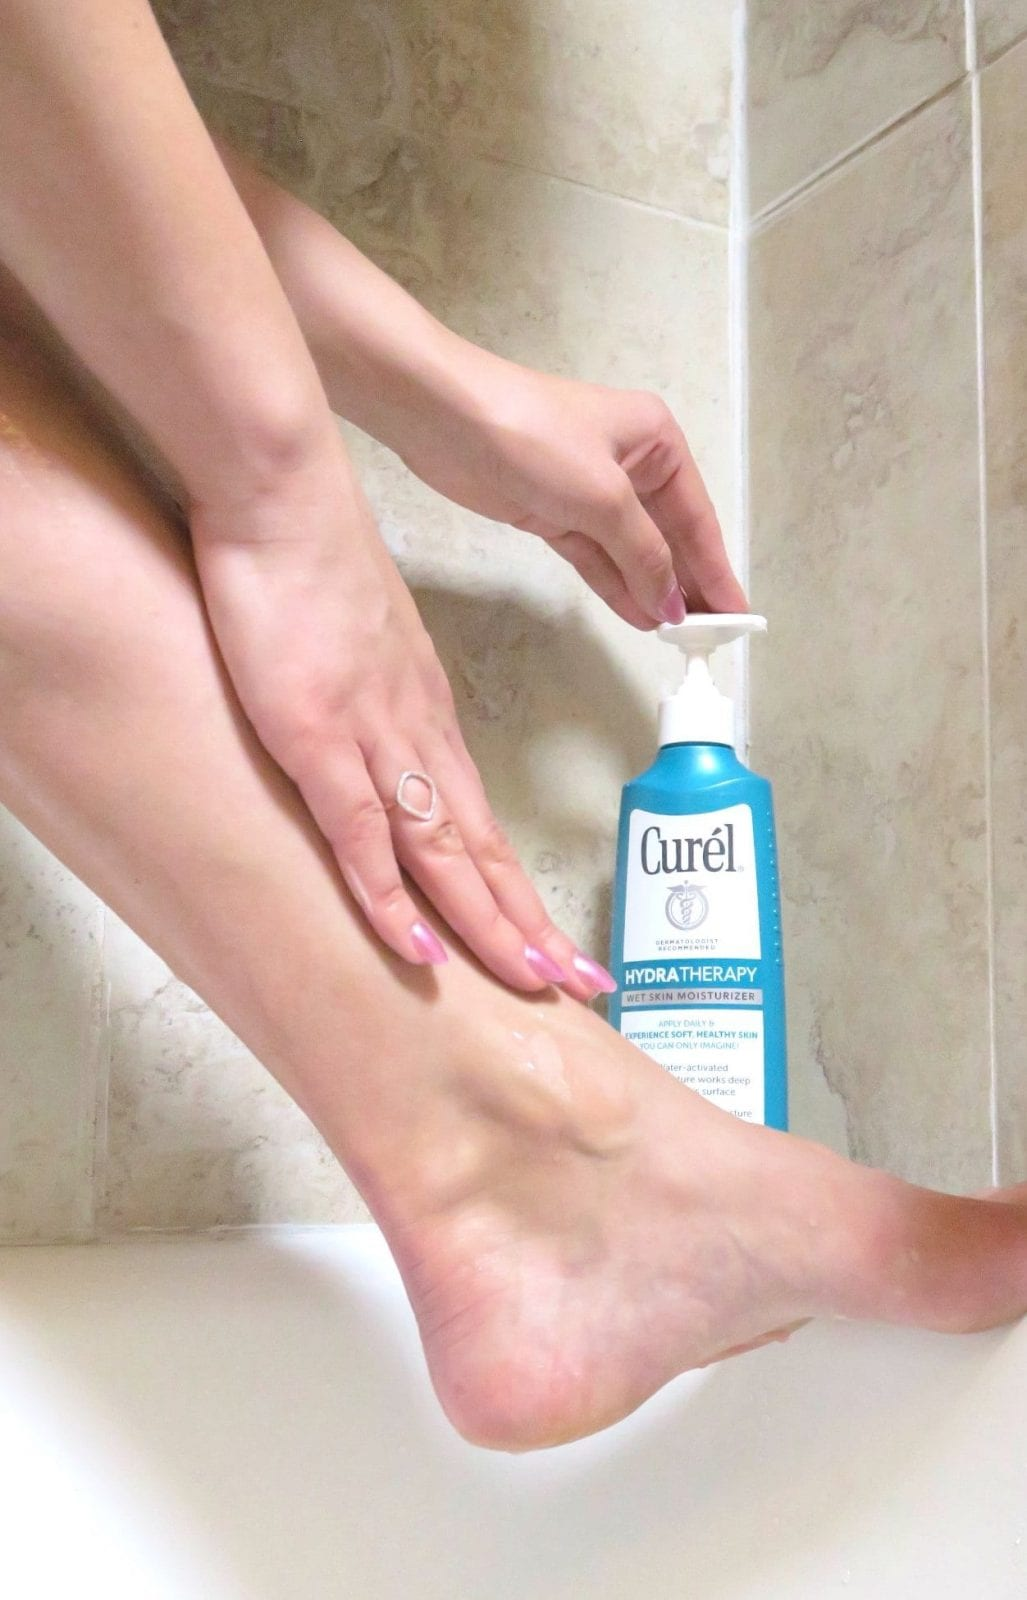 Demoing the Curel Wet Moisturizer